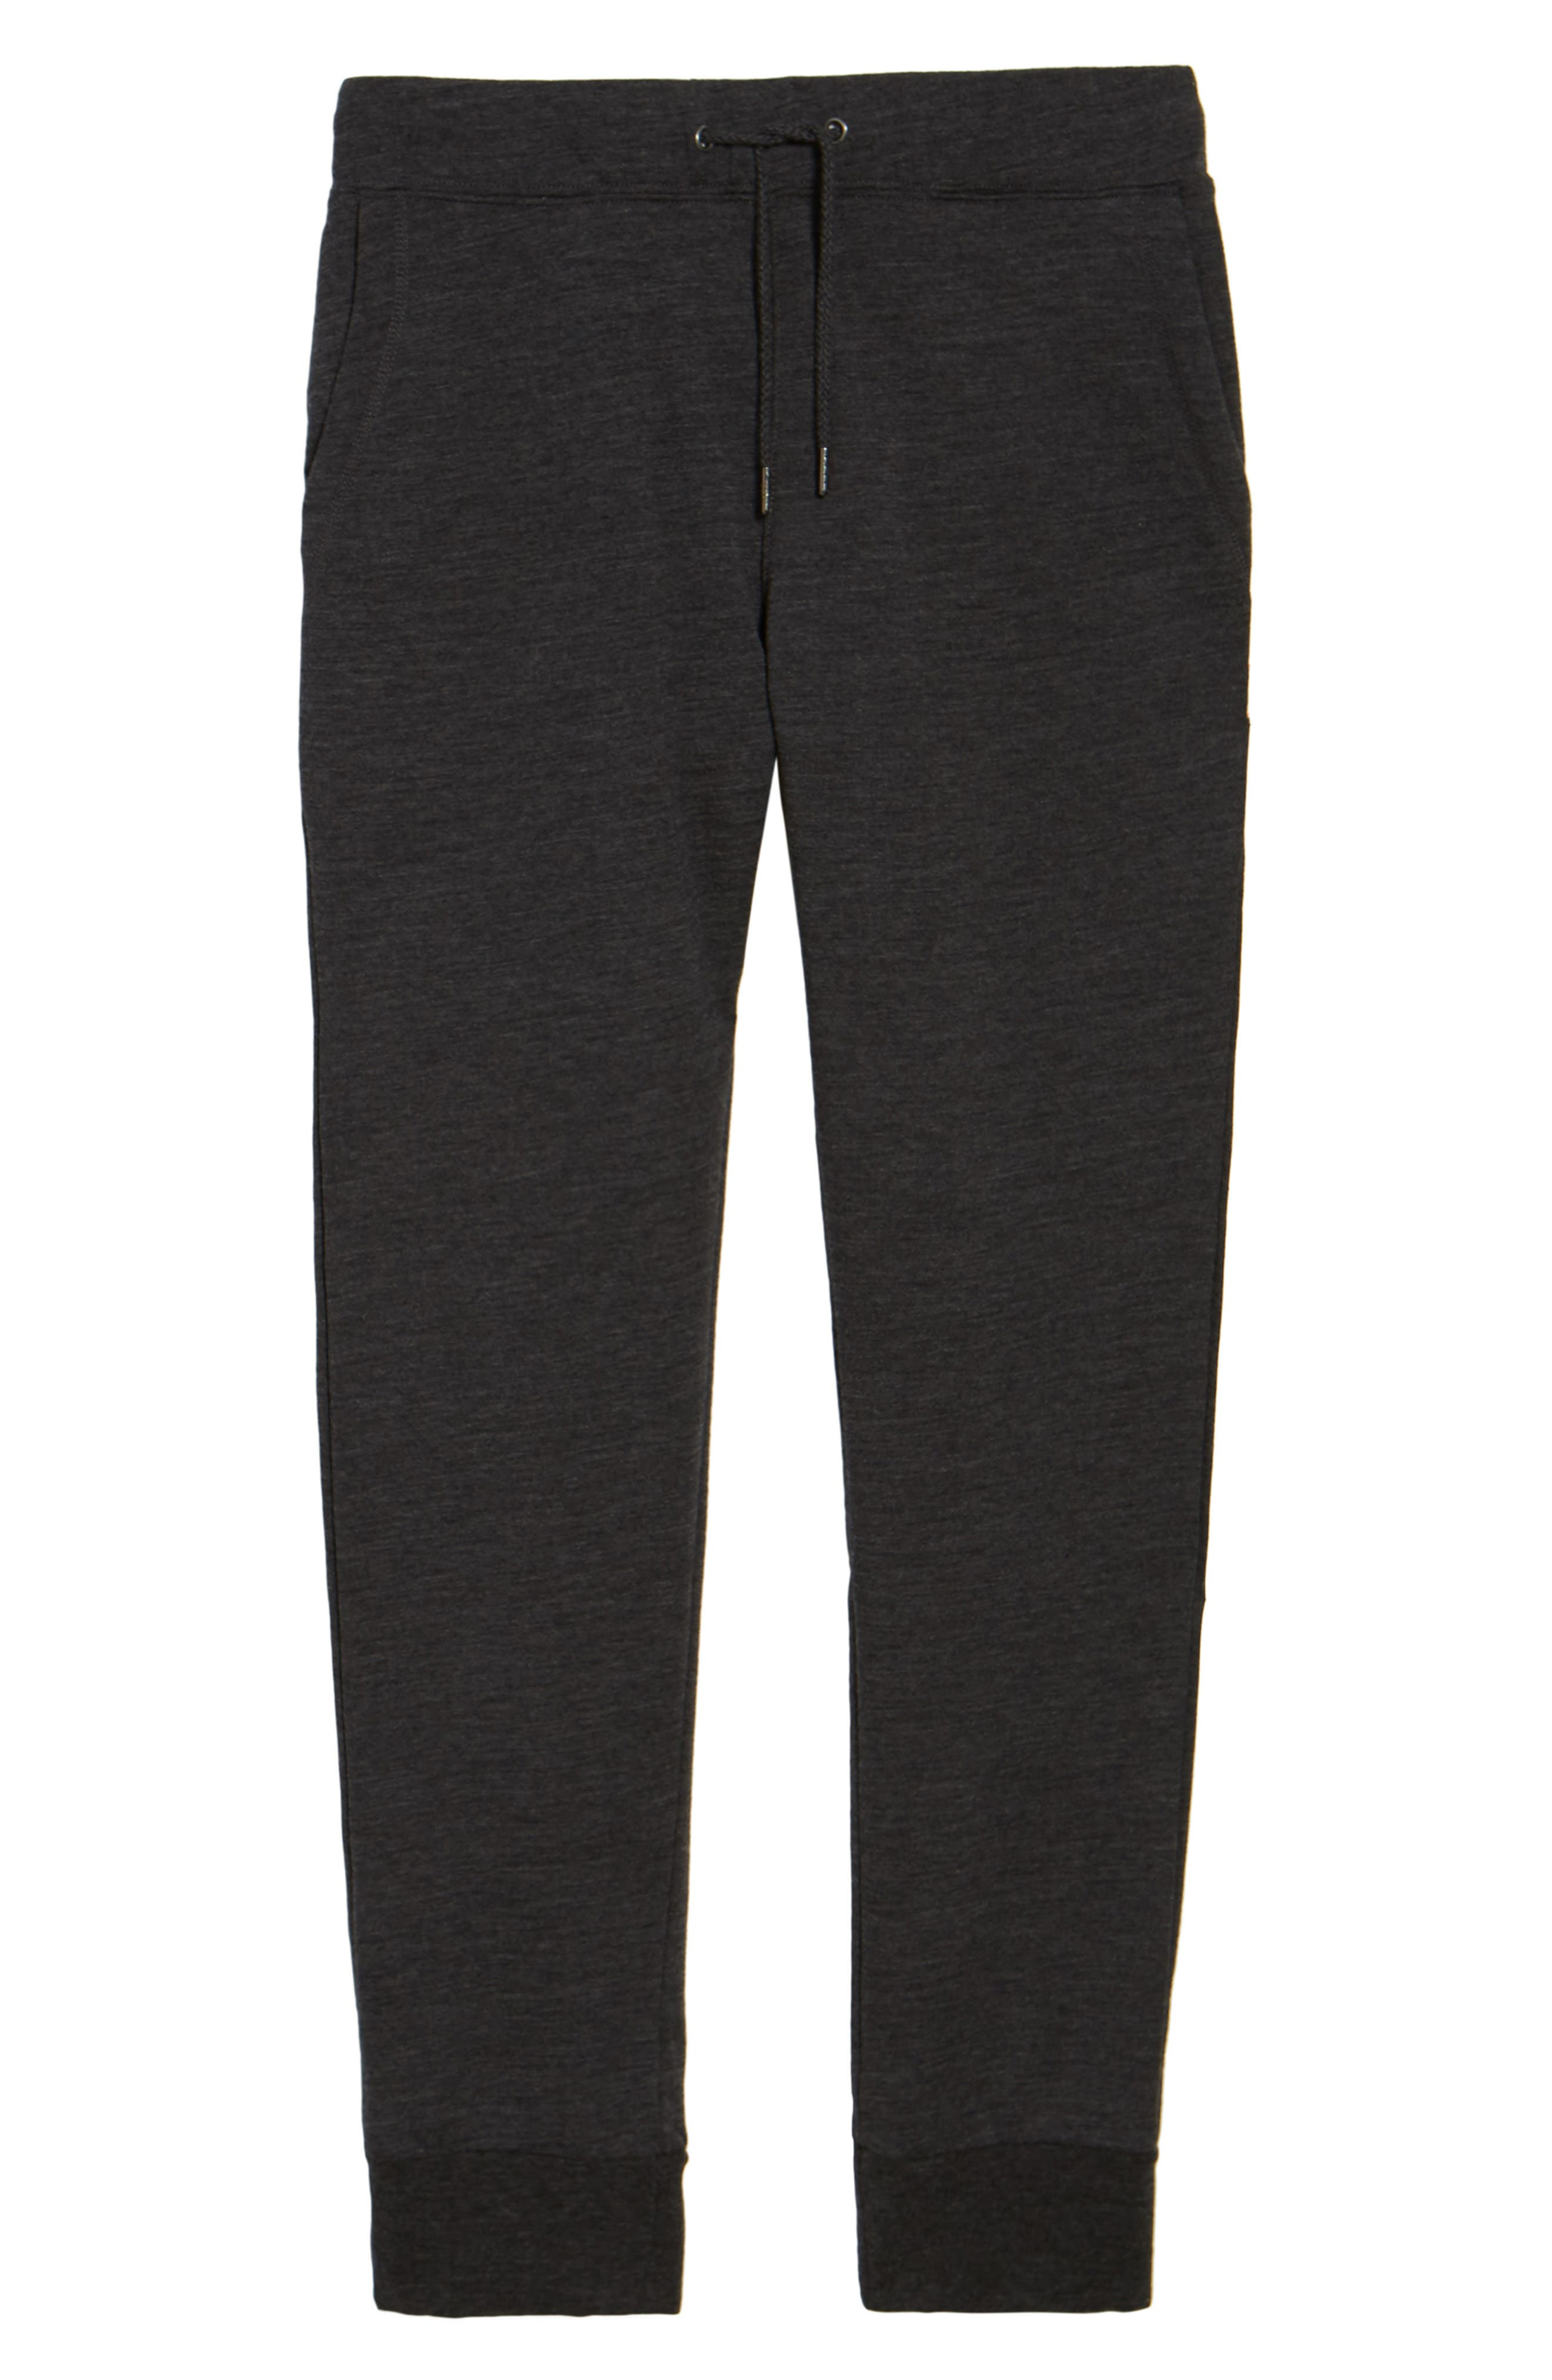 Merino Wool Fleece Jogger Pants,                             Alternate thumbnail 6, color,